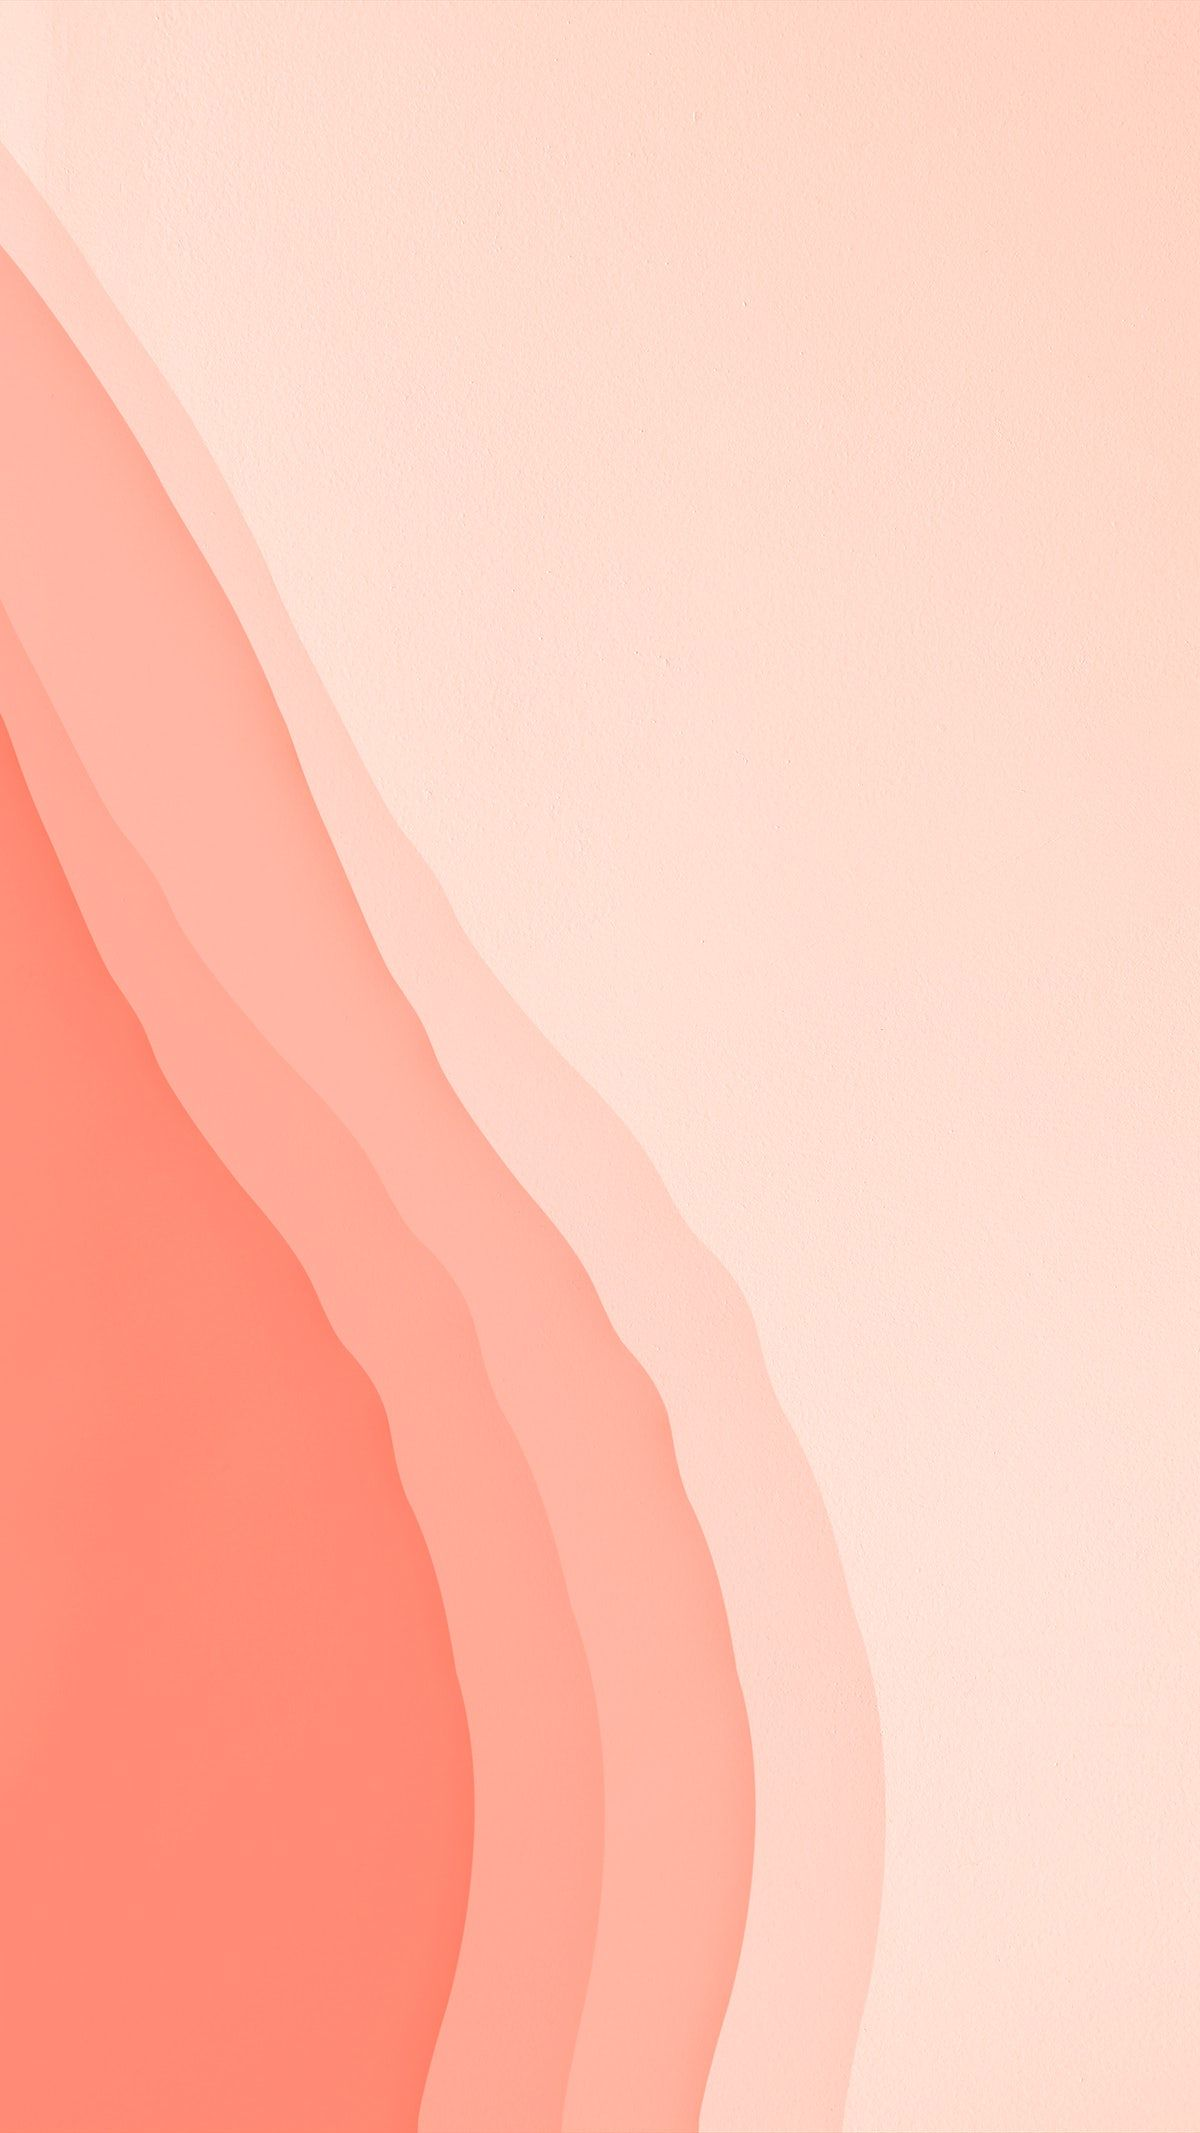 Download premium image of Abstract coral orange color psd background by Adjima about aesthetic plain background, abstract, abstract background, aesthetic, and android wallpaper 2541561